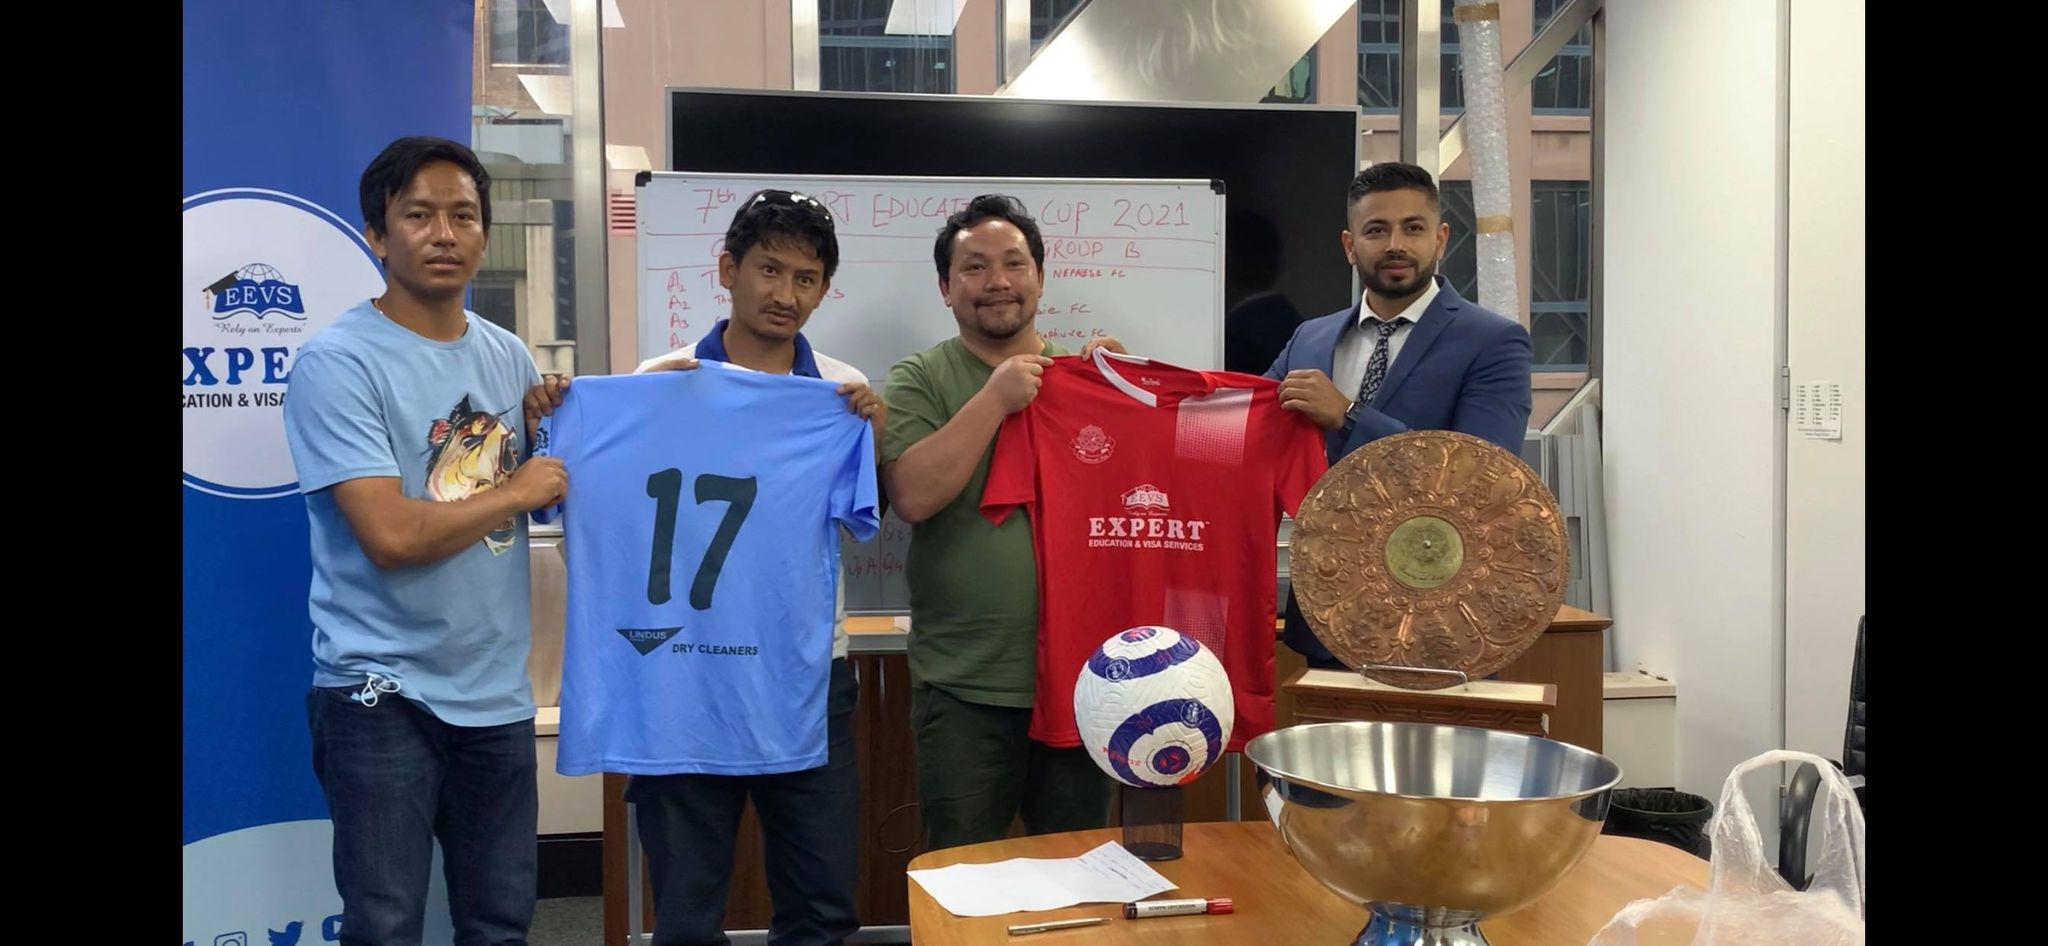 The much-awaited7th edition of 'Expert Education Cup, 2021',presented by the Tamang Recreational Club (TRCC)in association of ANFA, Australia, will take place on 24th January 2021 at Princes Park Rd., West Auburn, NSW.